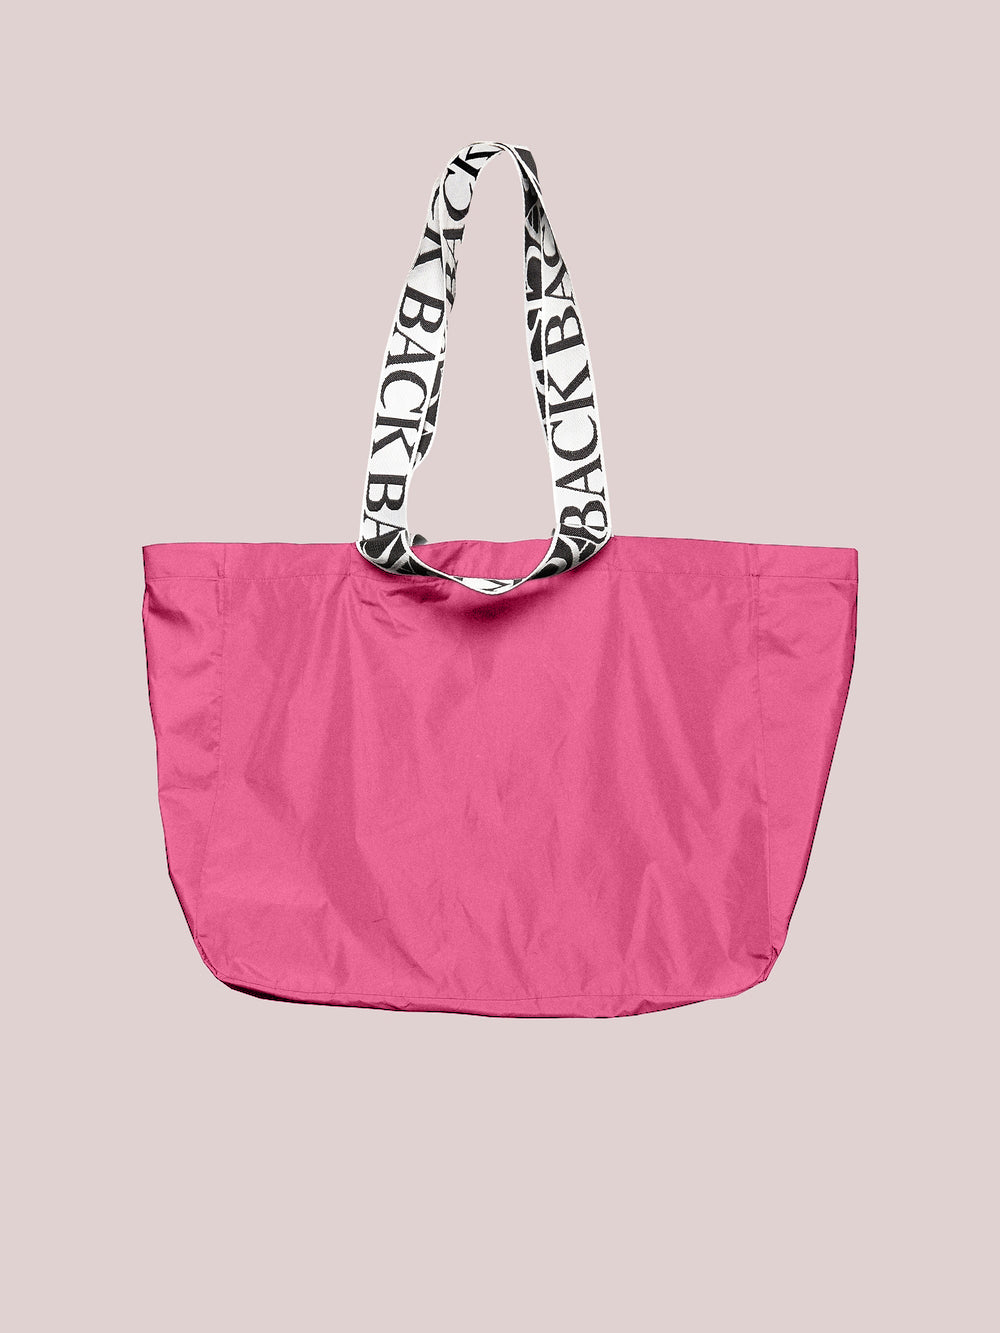 Logo Tote Pink - Now on Sale!